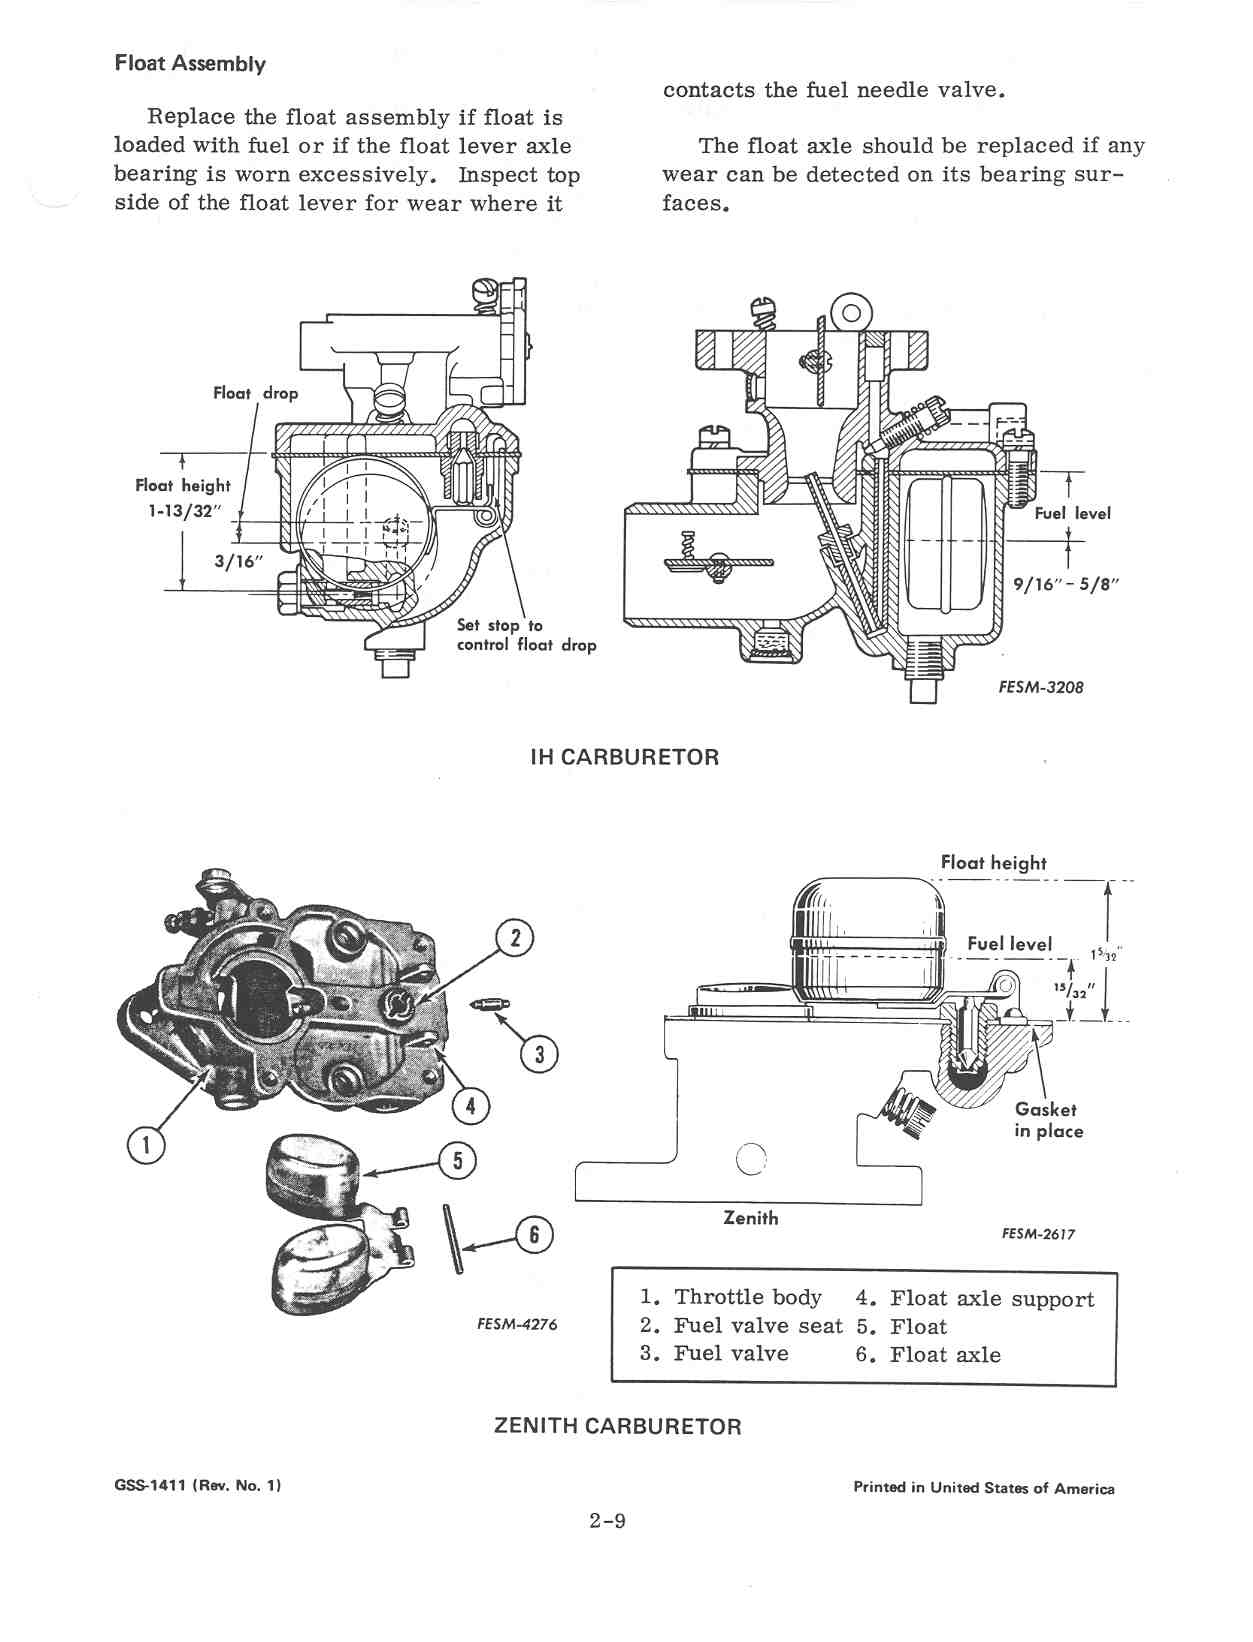 32 Farmall H Carburetor Diagram